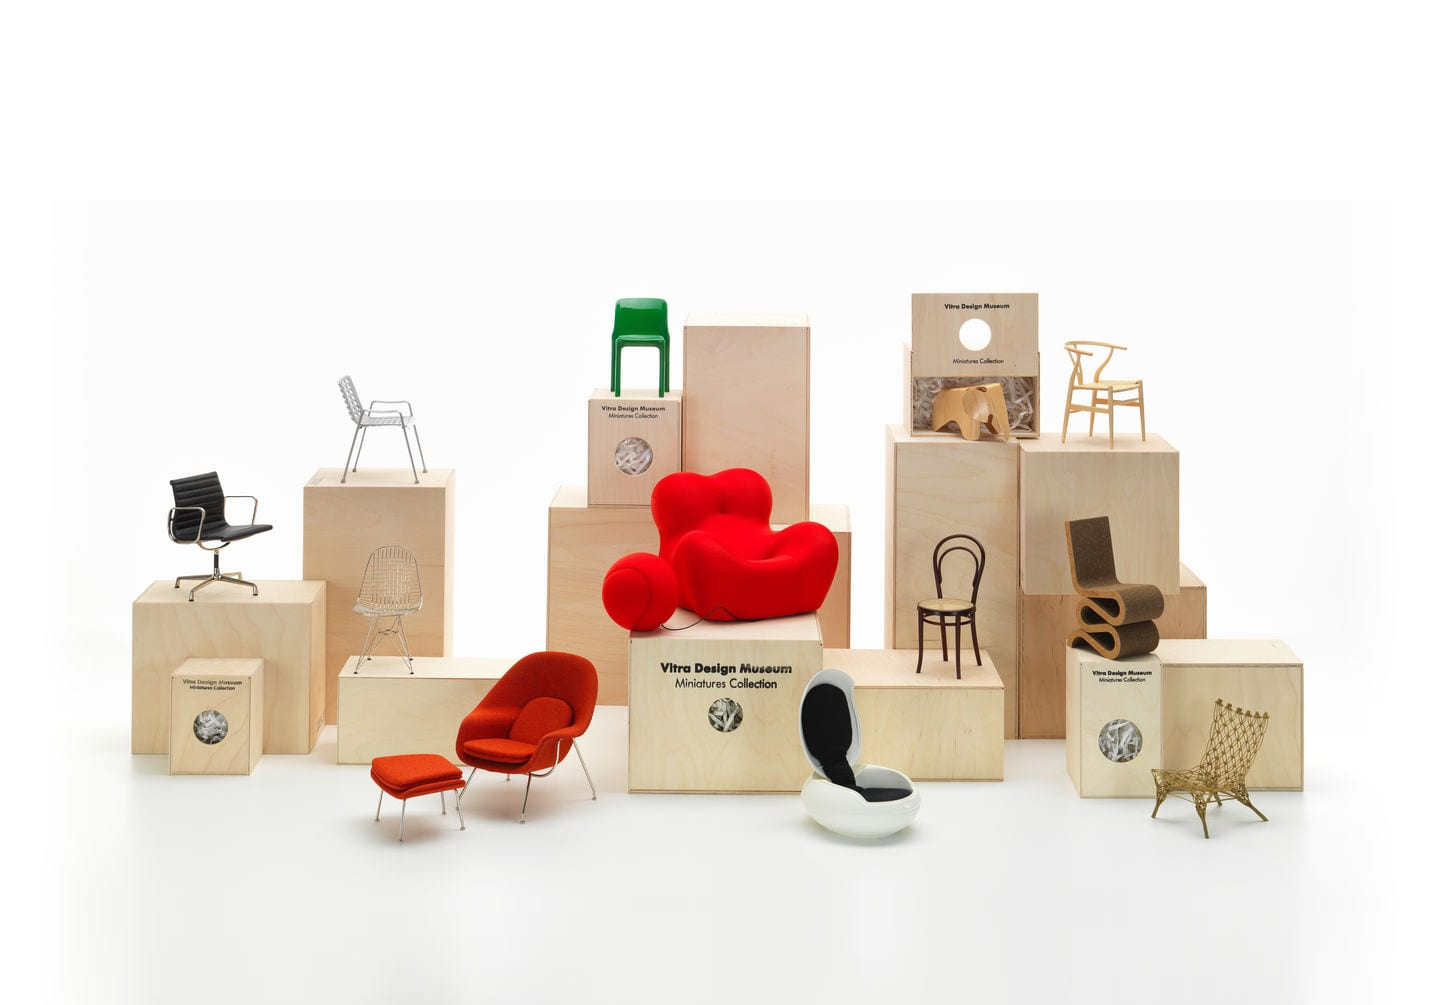 Vitra 100 Miniatures Exhibition Arrives Living Edge | Yellowtrace